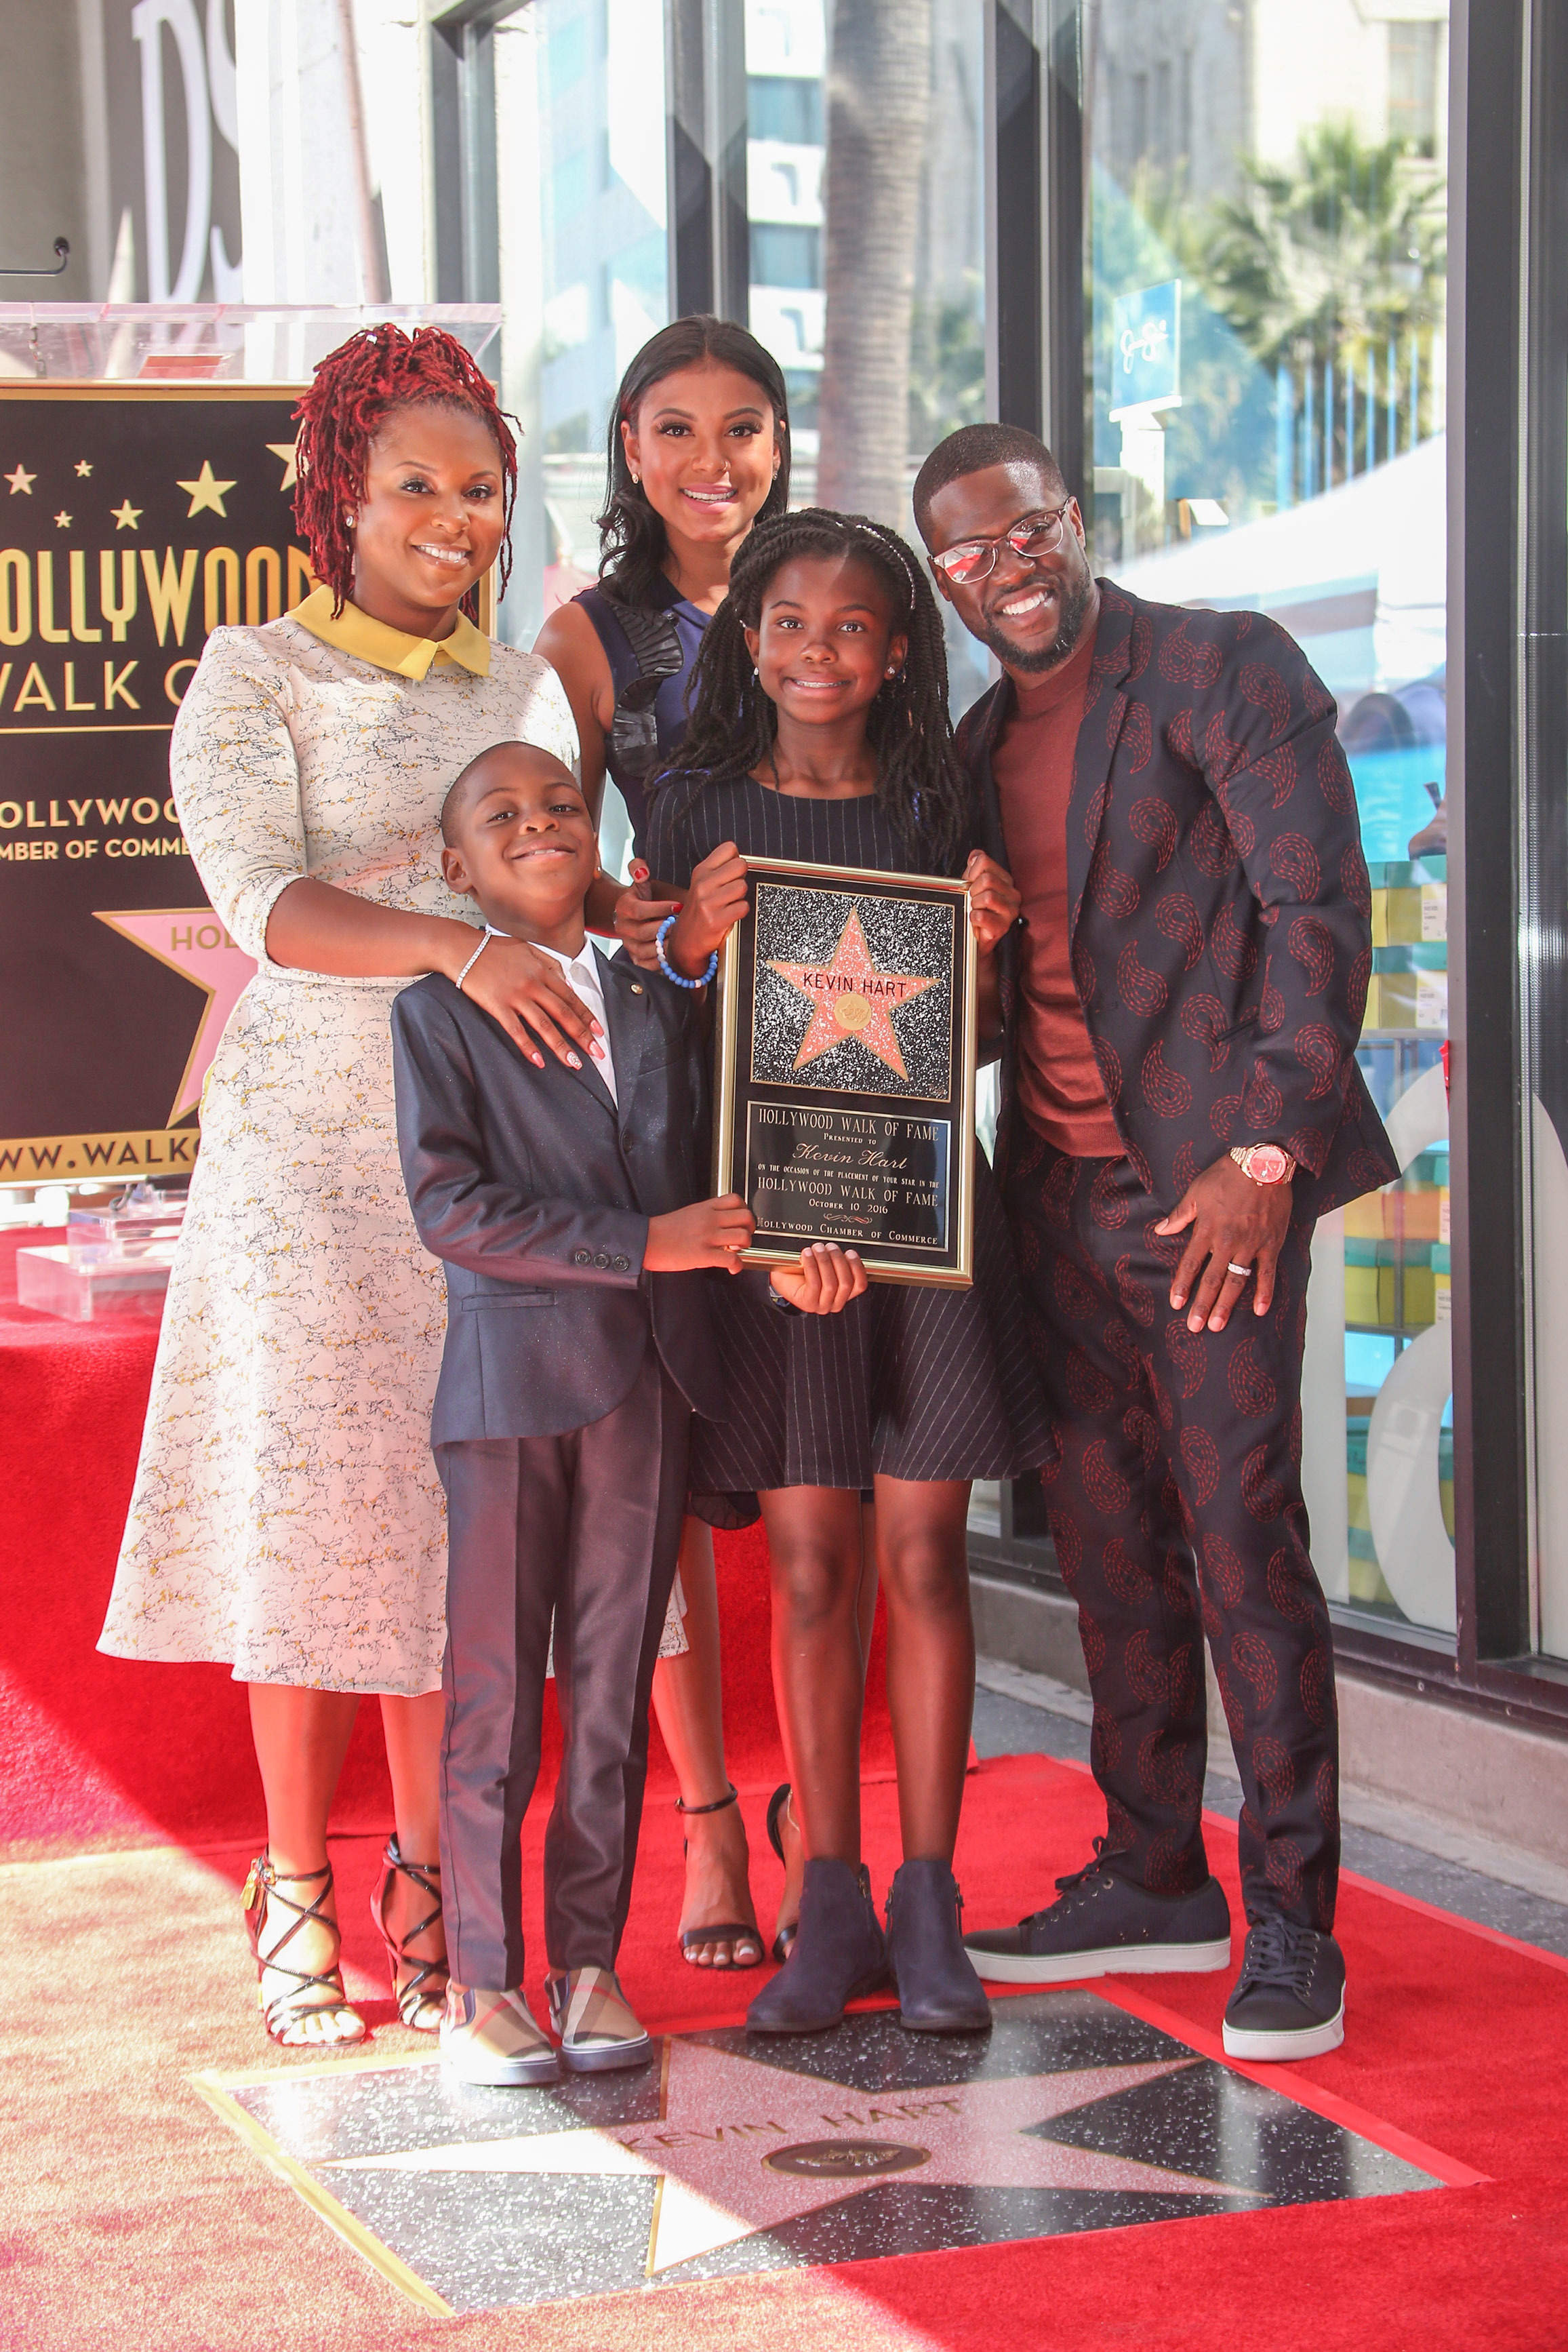 10/10/2016 - Torrei Hart, Eniko Parrish, Hendrix Hart, Heaven Hart and Kevin Hart - Kevin Hart Honored with a Star on the Hollywood Walk of Fame - Hollywood Walk of Fame - Hollywood, CA, USA - Keywords: Vertical, American actor, comedian, writer, producer, film industry, movie, television, red carpet event, Ceremony, Person, People, Celebrity, Celebrities, WOF, HWOF, Photography, Photograph, Candid, Respect, Arts Culture and Entertainment, Attending, Topix, Bestof, Los Angeles, California Orientation: Portrait Face Count: 1 - False - Photo Credit: PRPhotos.com - Contact (1-866-551-7827) - Portrait Face Count: 1